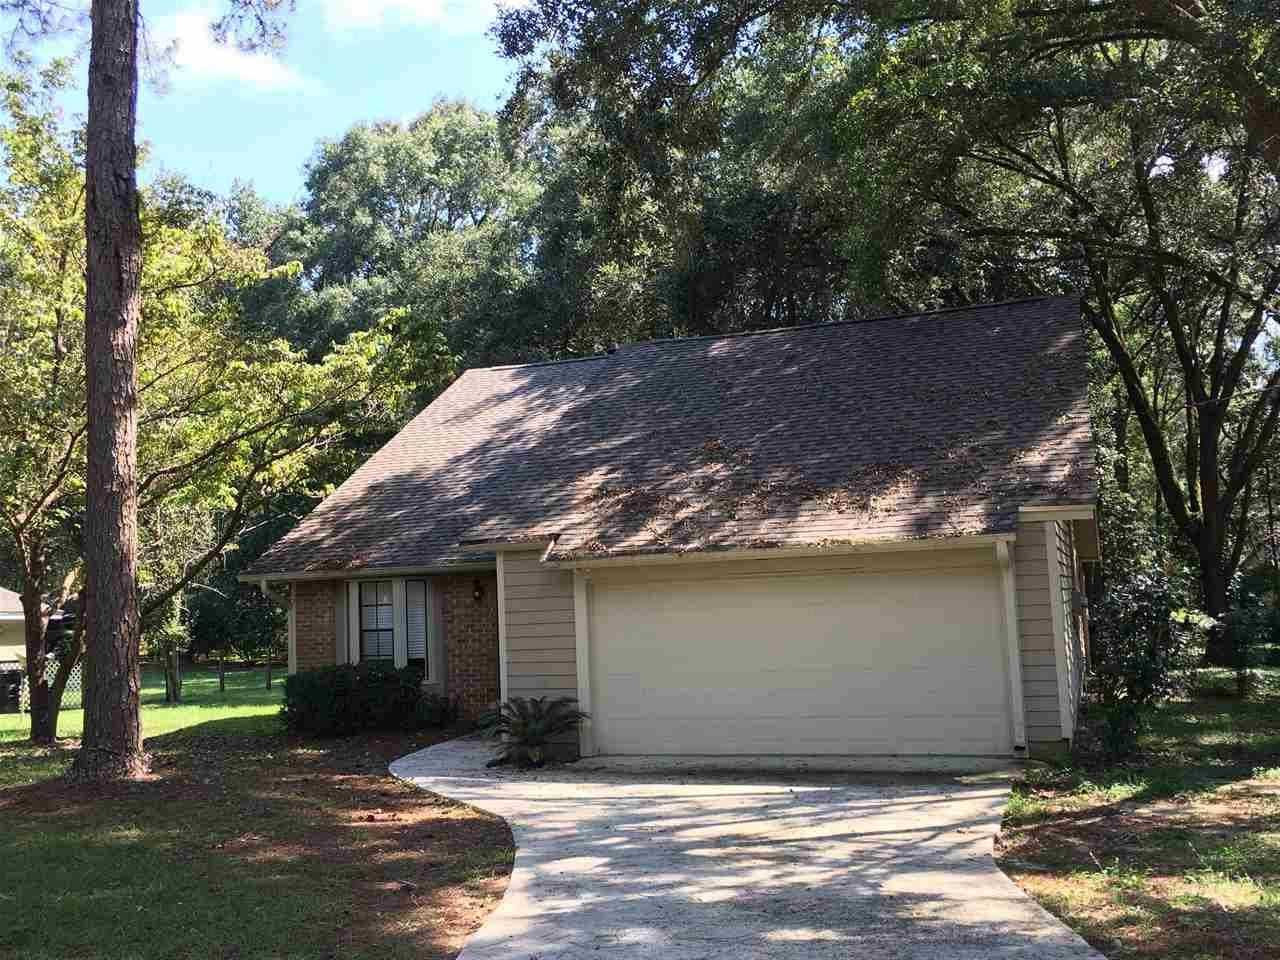 3413 Native Dancers Trail Tallahassee, FL 32309 in Killearn Acres Photo 1